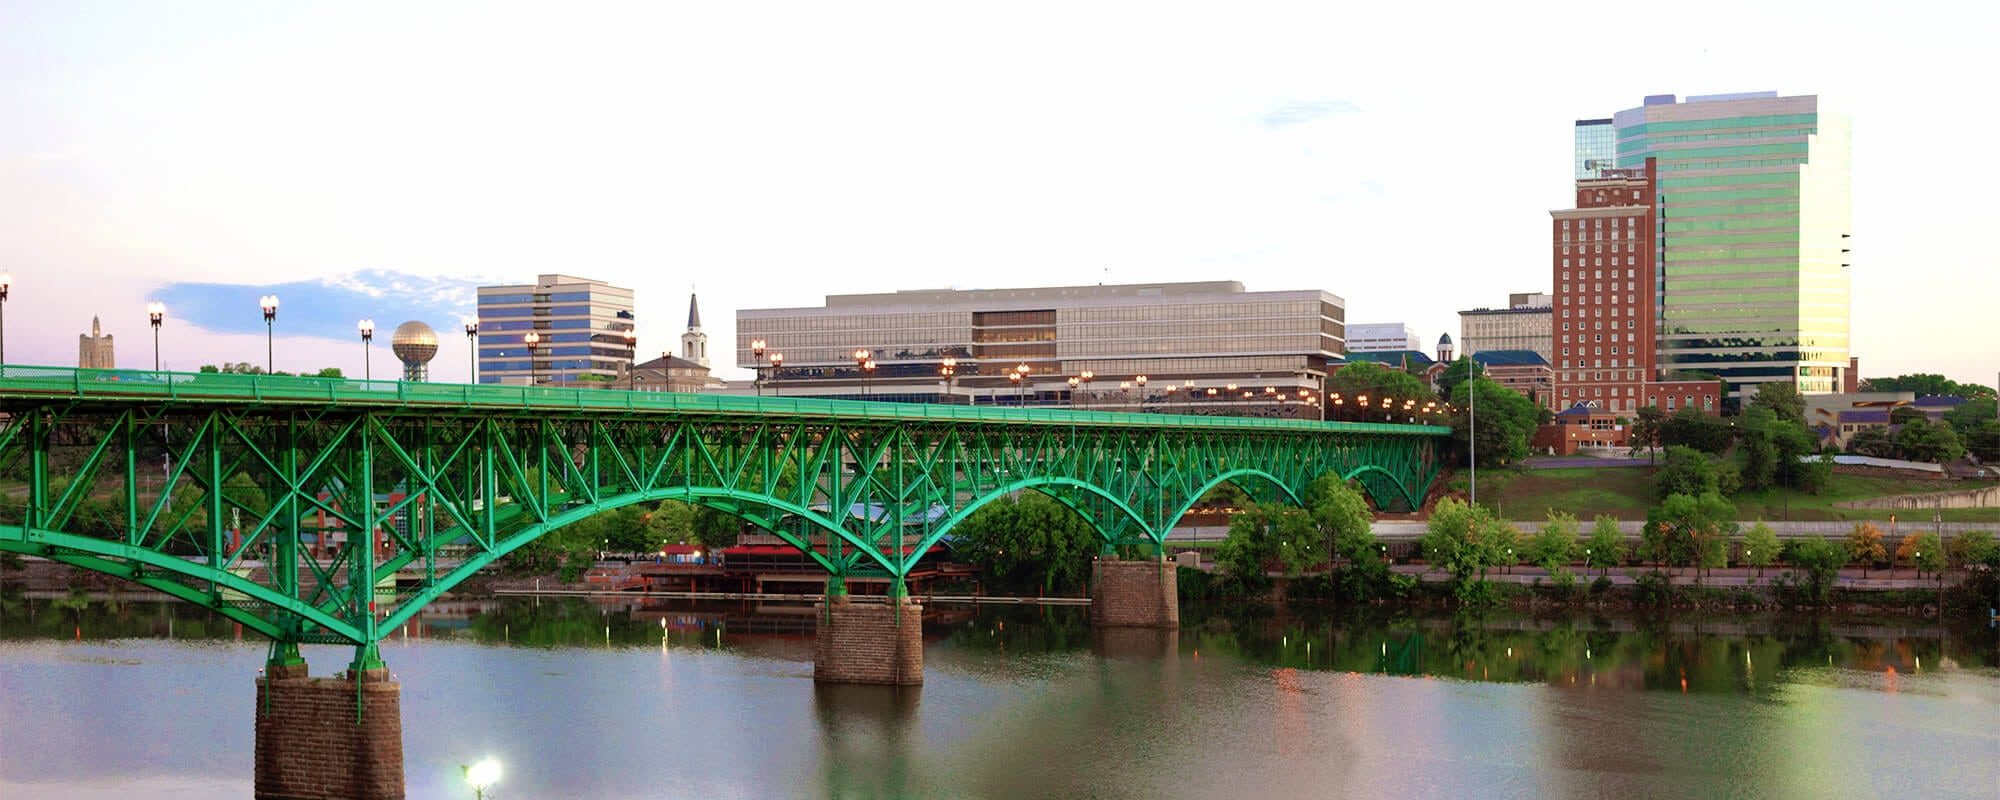 LHP Capital, LLC is Located in Downtown Knoxville, Tennessee